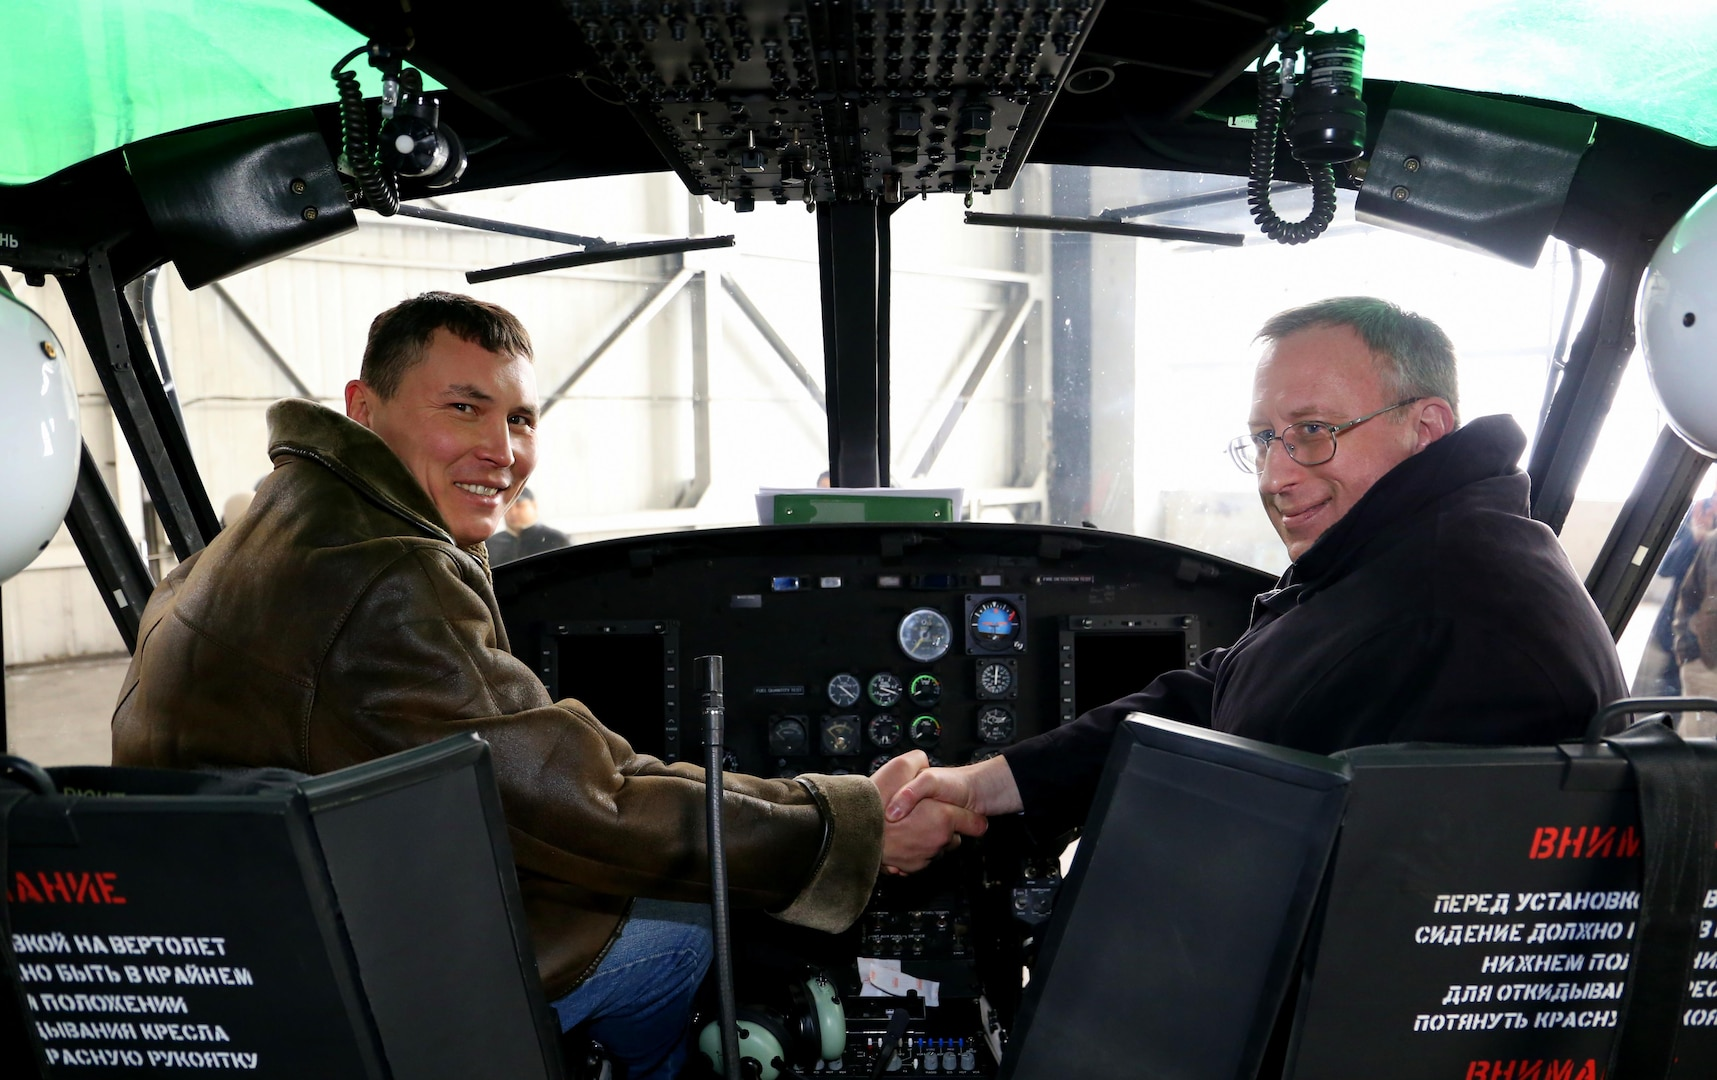 ALMATY, Kazakhstan (Jan. 27,2017) U.S.Ambassador to Kazakhstan, George Krol, right, shakes hands with Kazakh Air Force Major Sergey Kokonov insde of a Huey II Helicopter that was handed over to the Ministry of Defense of Kazakhstan. This is the fourth Huey helicopter provided to Kazakhstan through the U.S. Foreign Military Sales Program. (Courtesy photo)